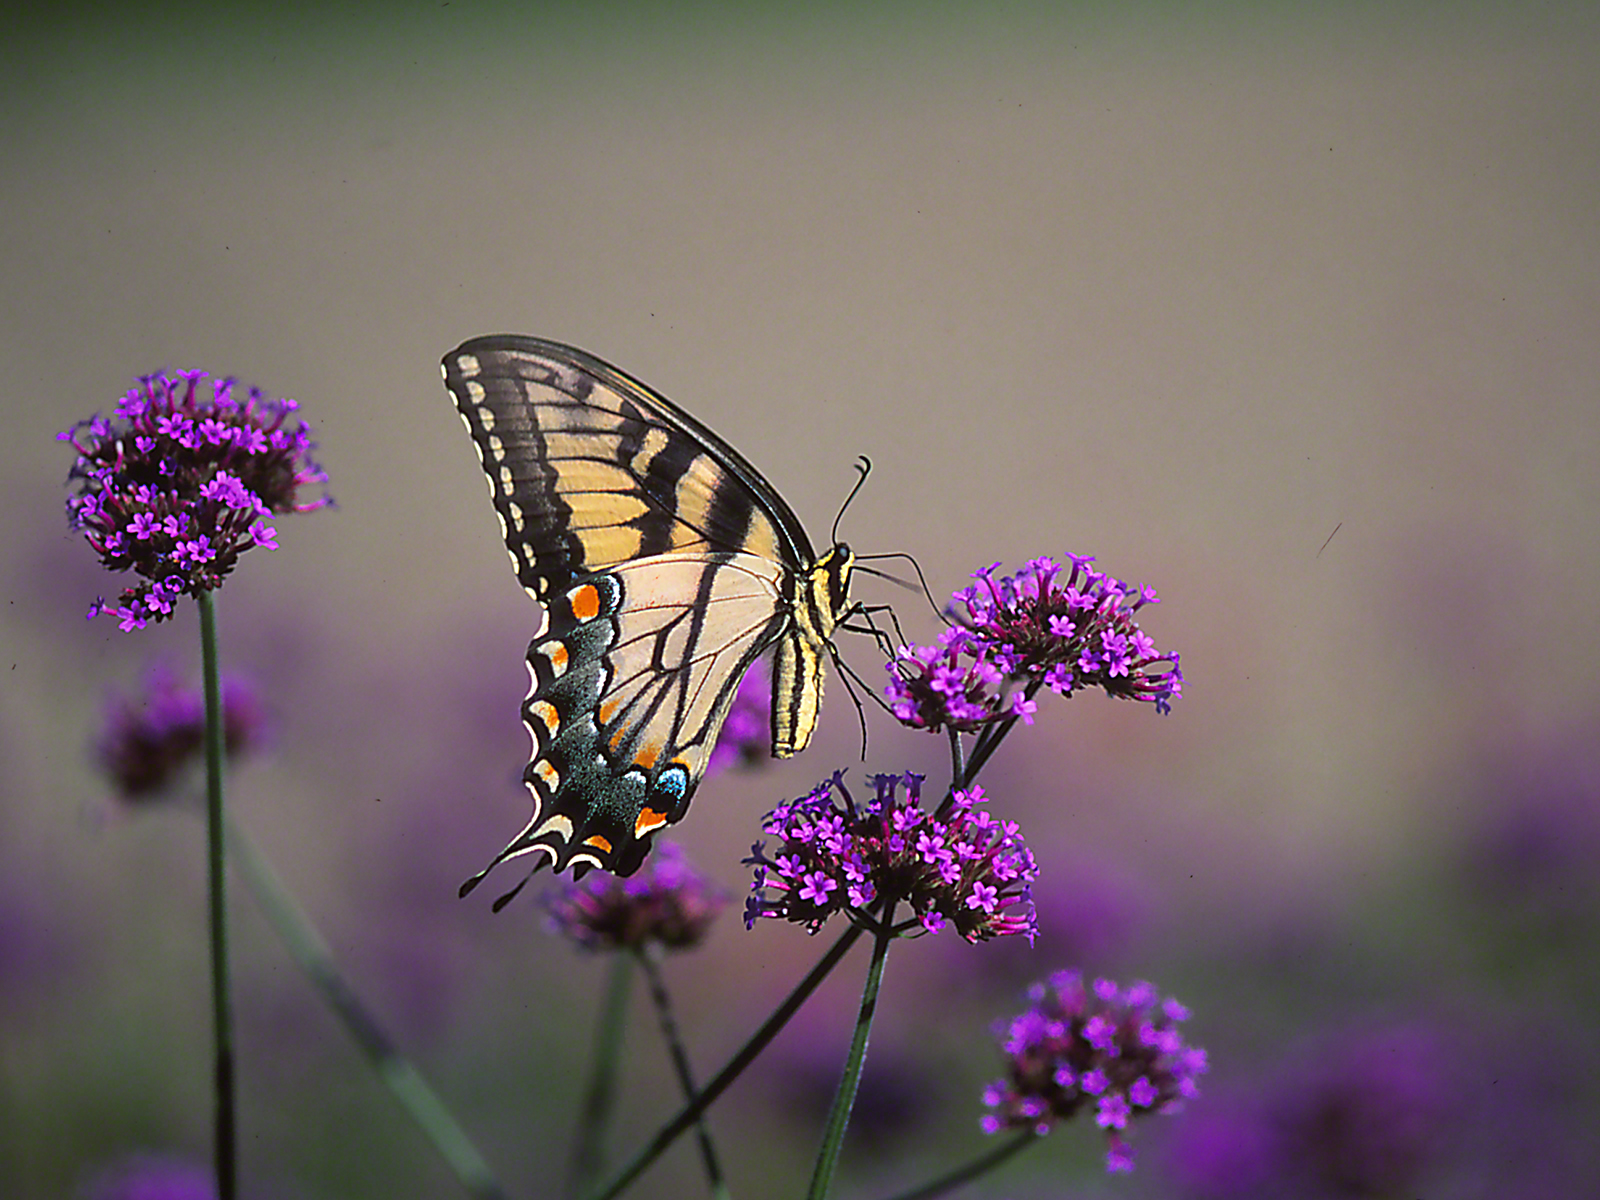 Female Eastern Tiger Swallowtail butterfly on tall Verbena blooms photographed by Jeff Zablow at Phipps Conservatory Outdoor Gardens, Pittsburgh, PA